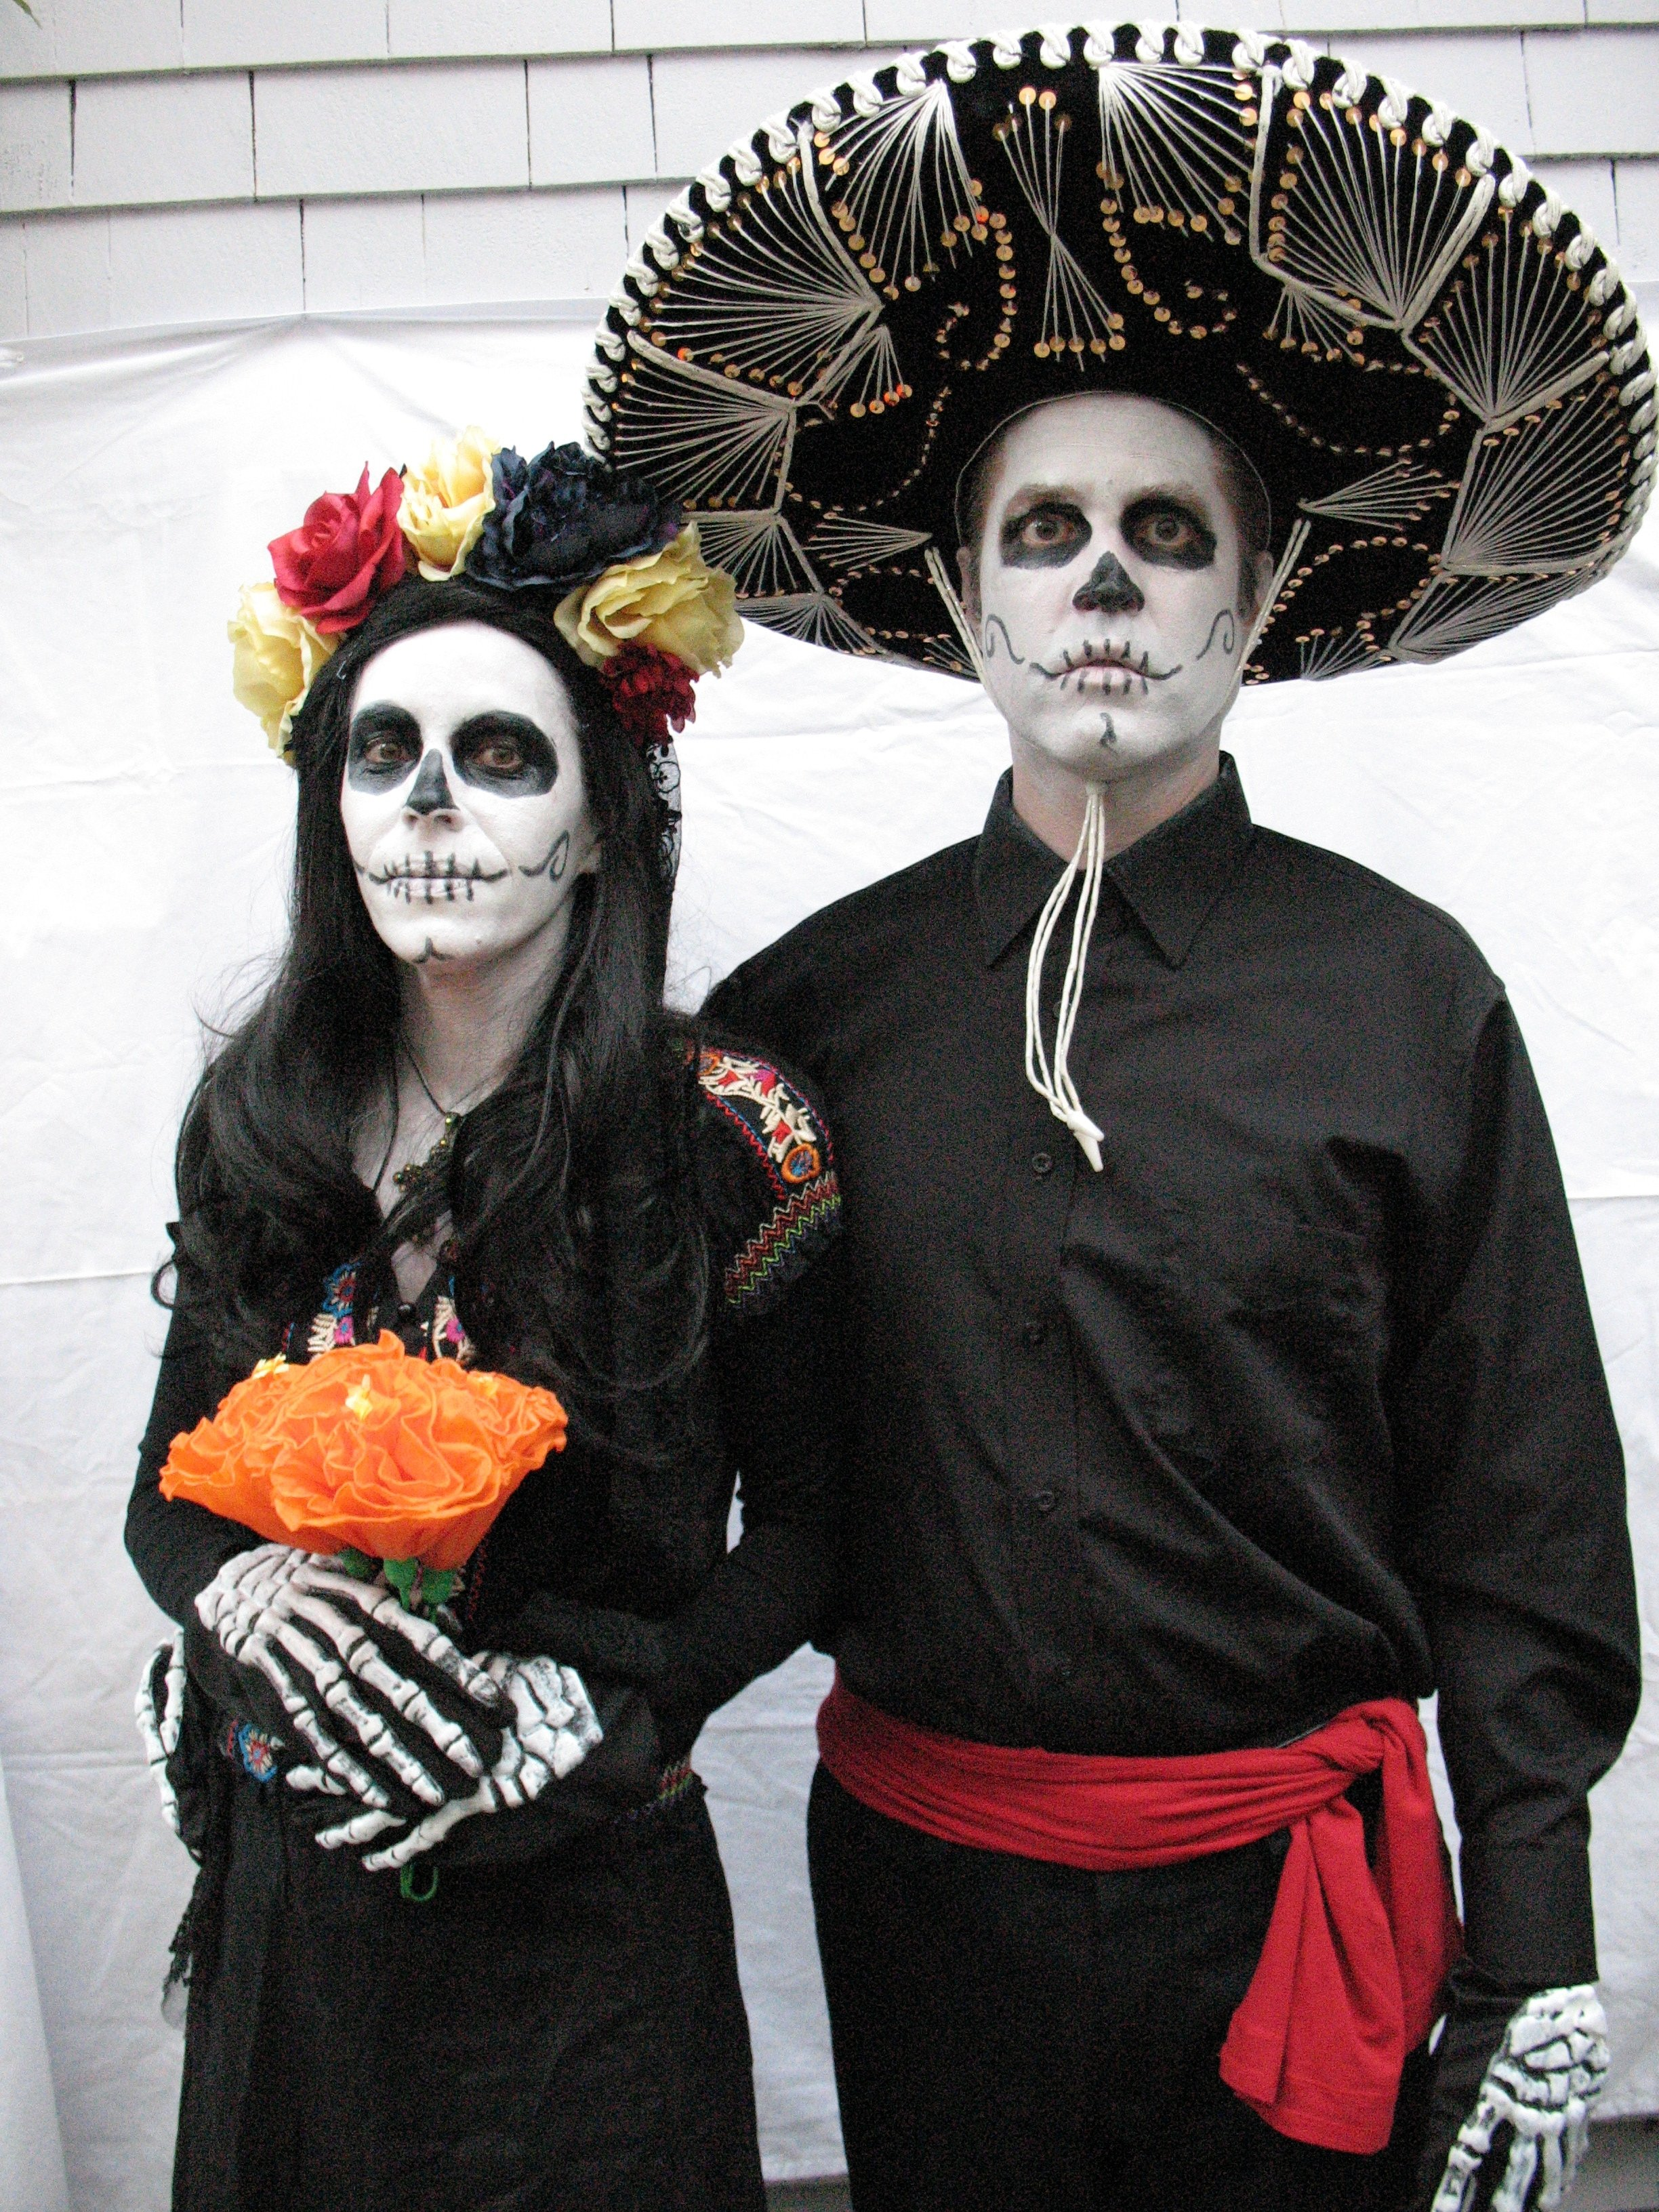 10 Wonderful Dia De Los Muertos Costumes Ideas day of the dead costumes dia de los muertos all hallows eve 3